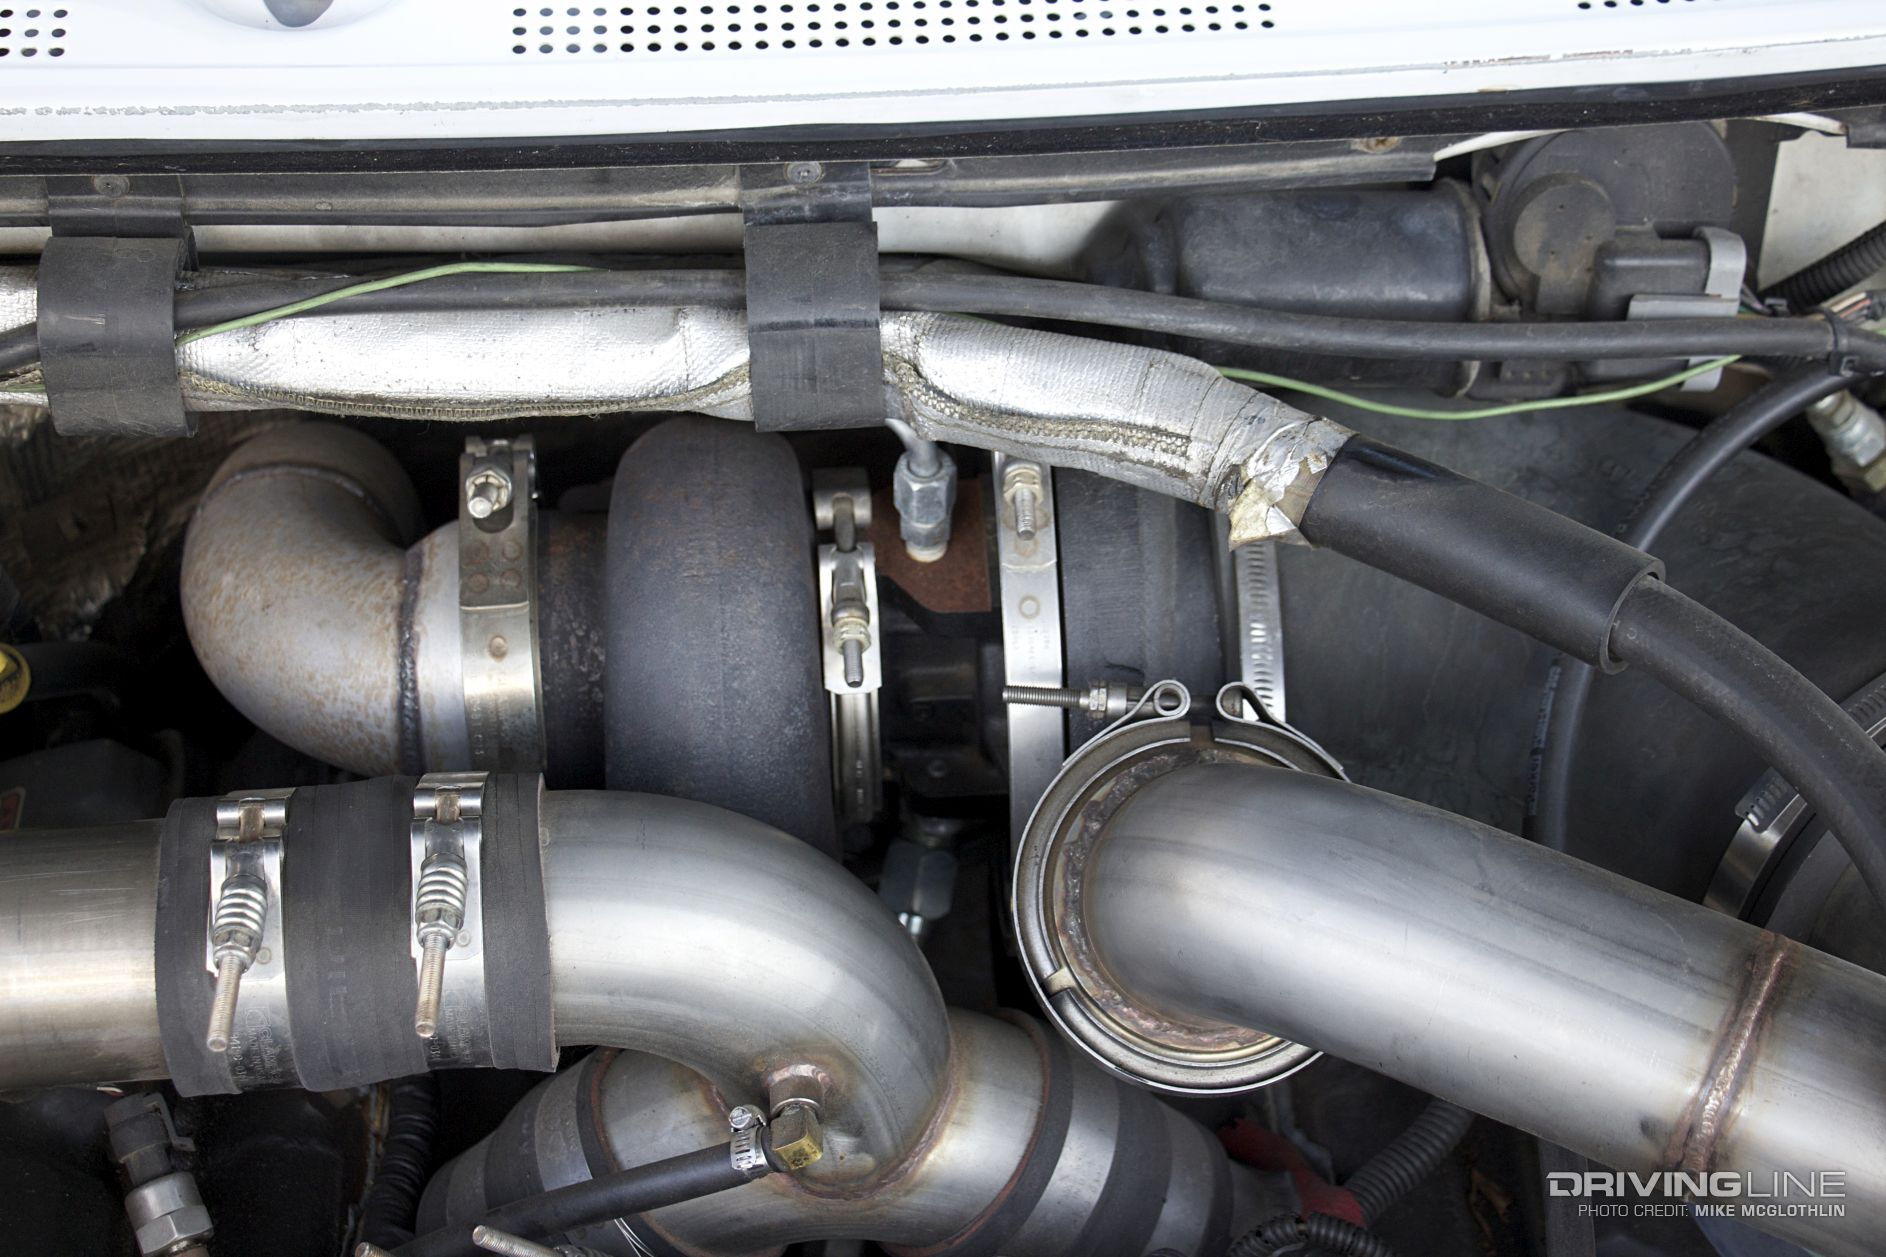 exhaust systems turbo back front down pipe dual 4 smoker exhaust system kit for 1999 2003 ford f250 f350 7 3l turbo diesel power stroke pickup truck header back systems